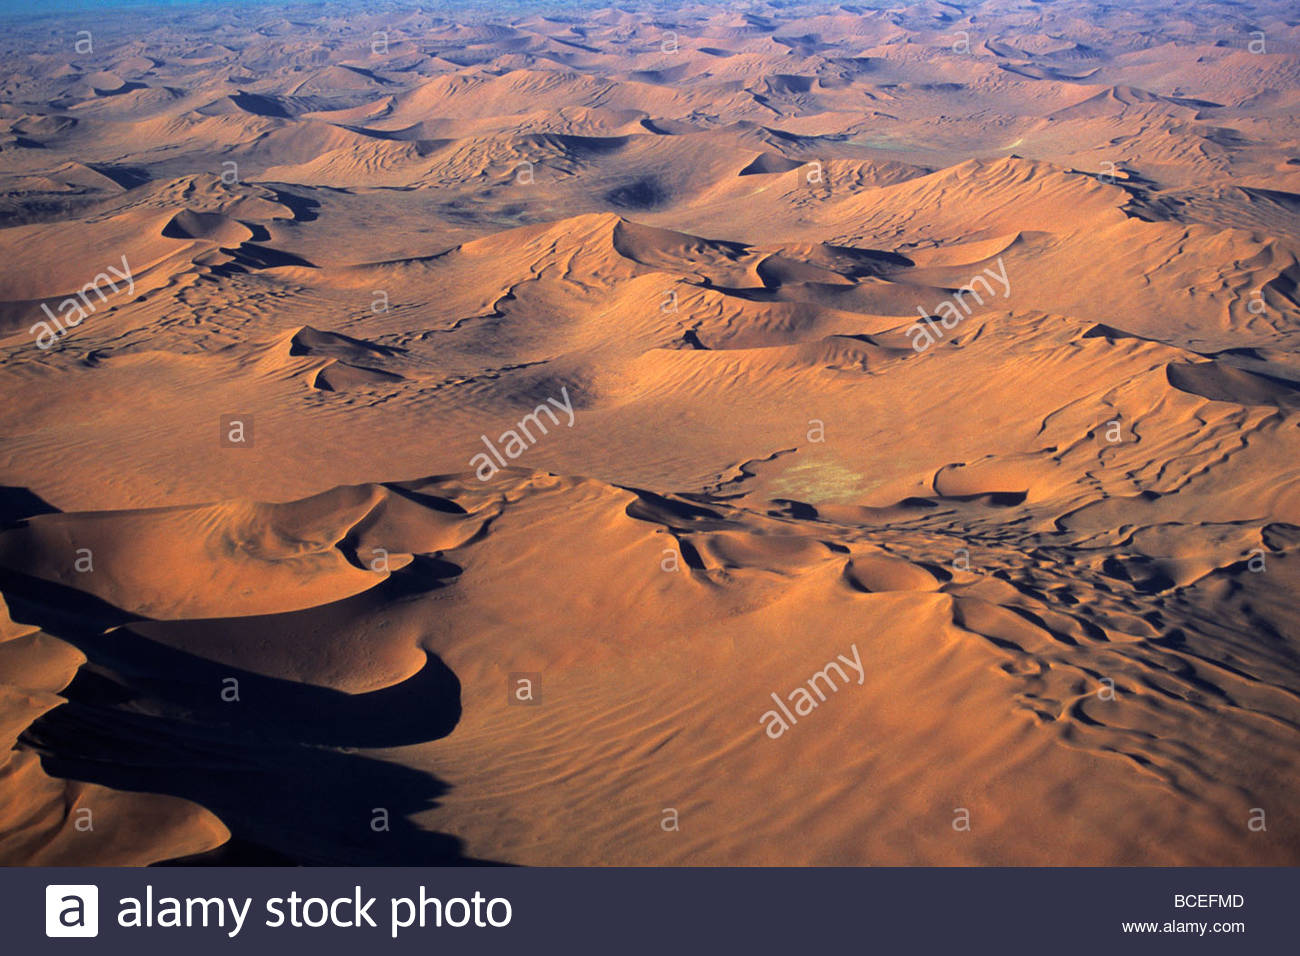 An aerial view of the Namibian desert. Stock Foto